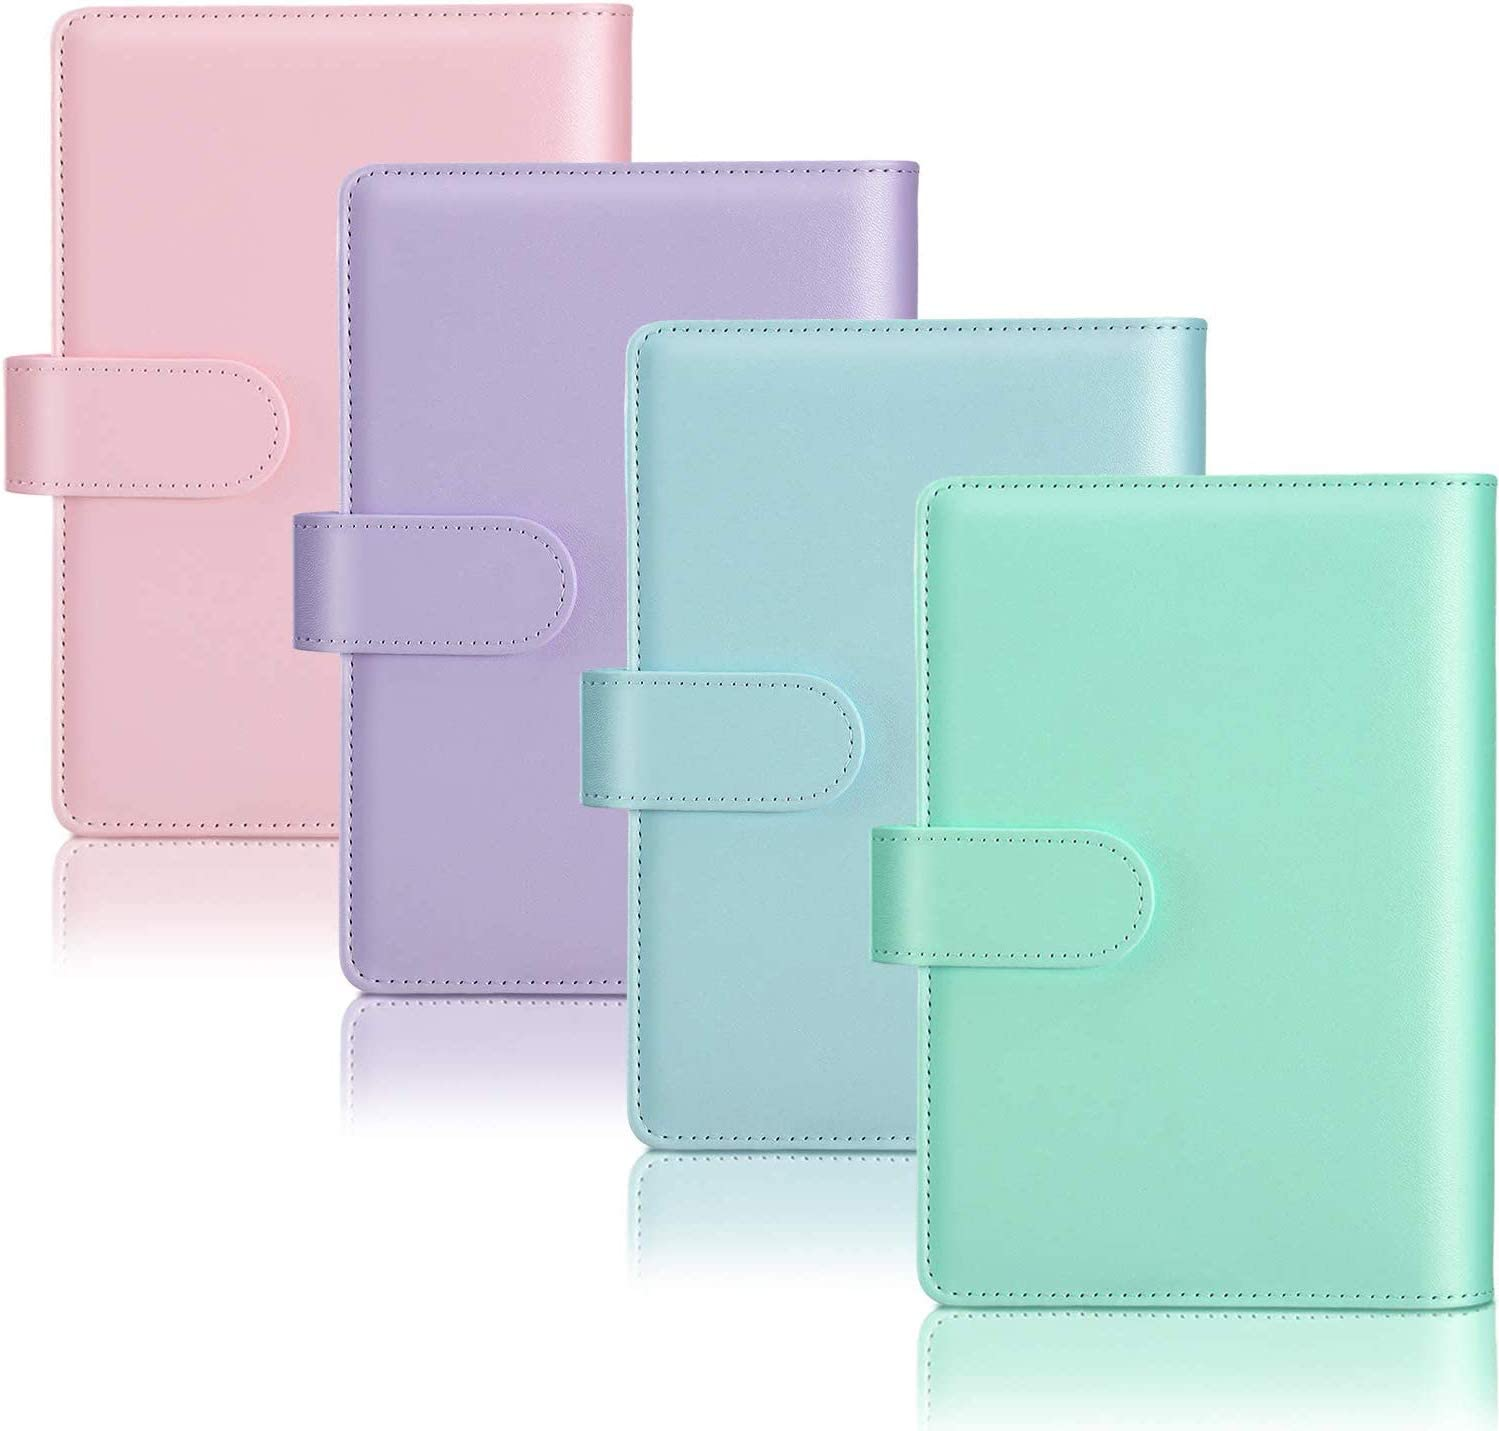 4 Pieces of A6 PU Artificial Leather Notebook Binder Loose-Leaf Can Be Filled With 6-Ring Binder Cover With Magnetic Closure